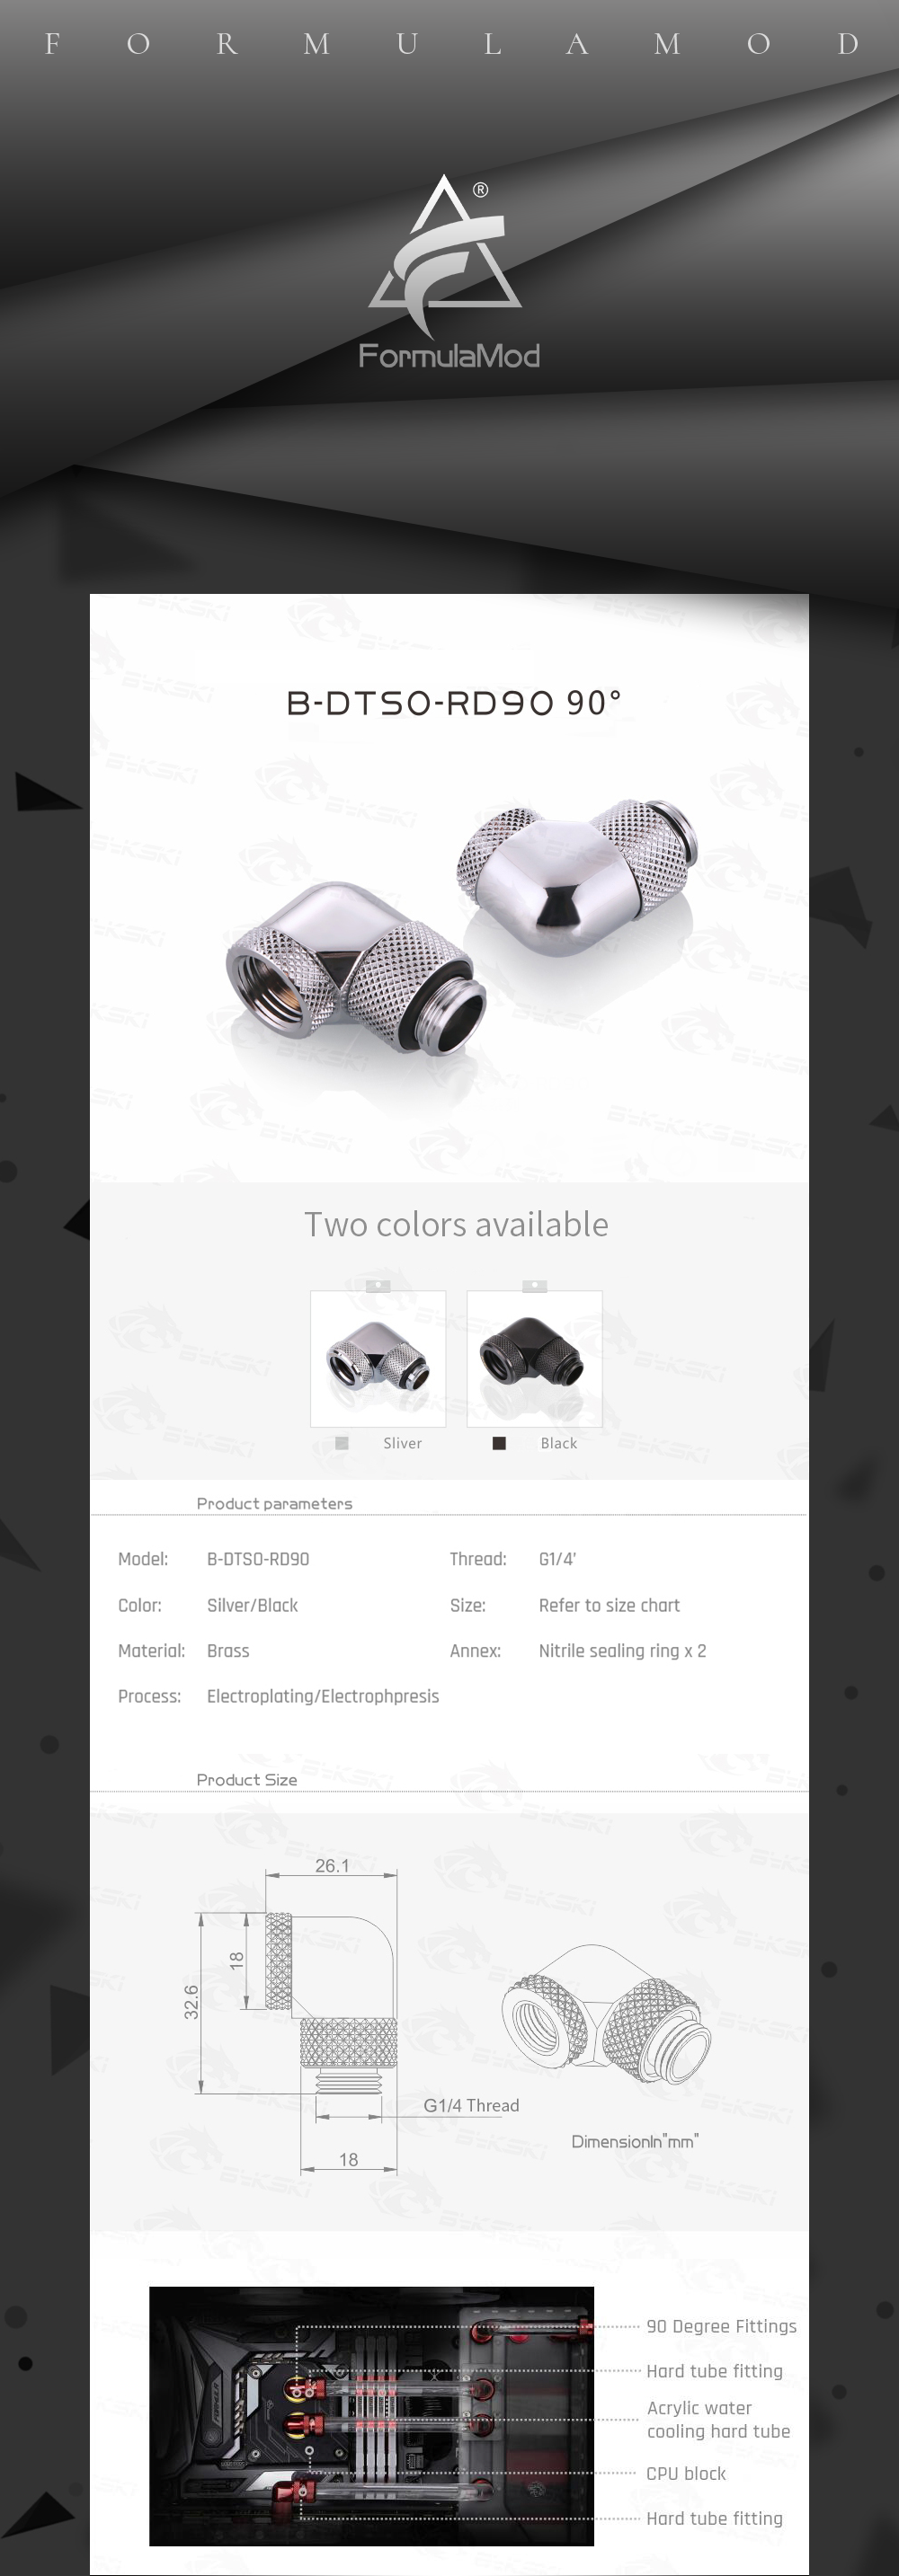 Bykski B-DTSO-RD90 G1/4'' Thread 90 Degree Double Rotary Fittings Boutique Diamond Pattern Two Color Water Coolling Fittings